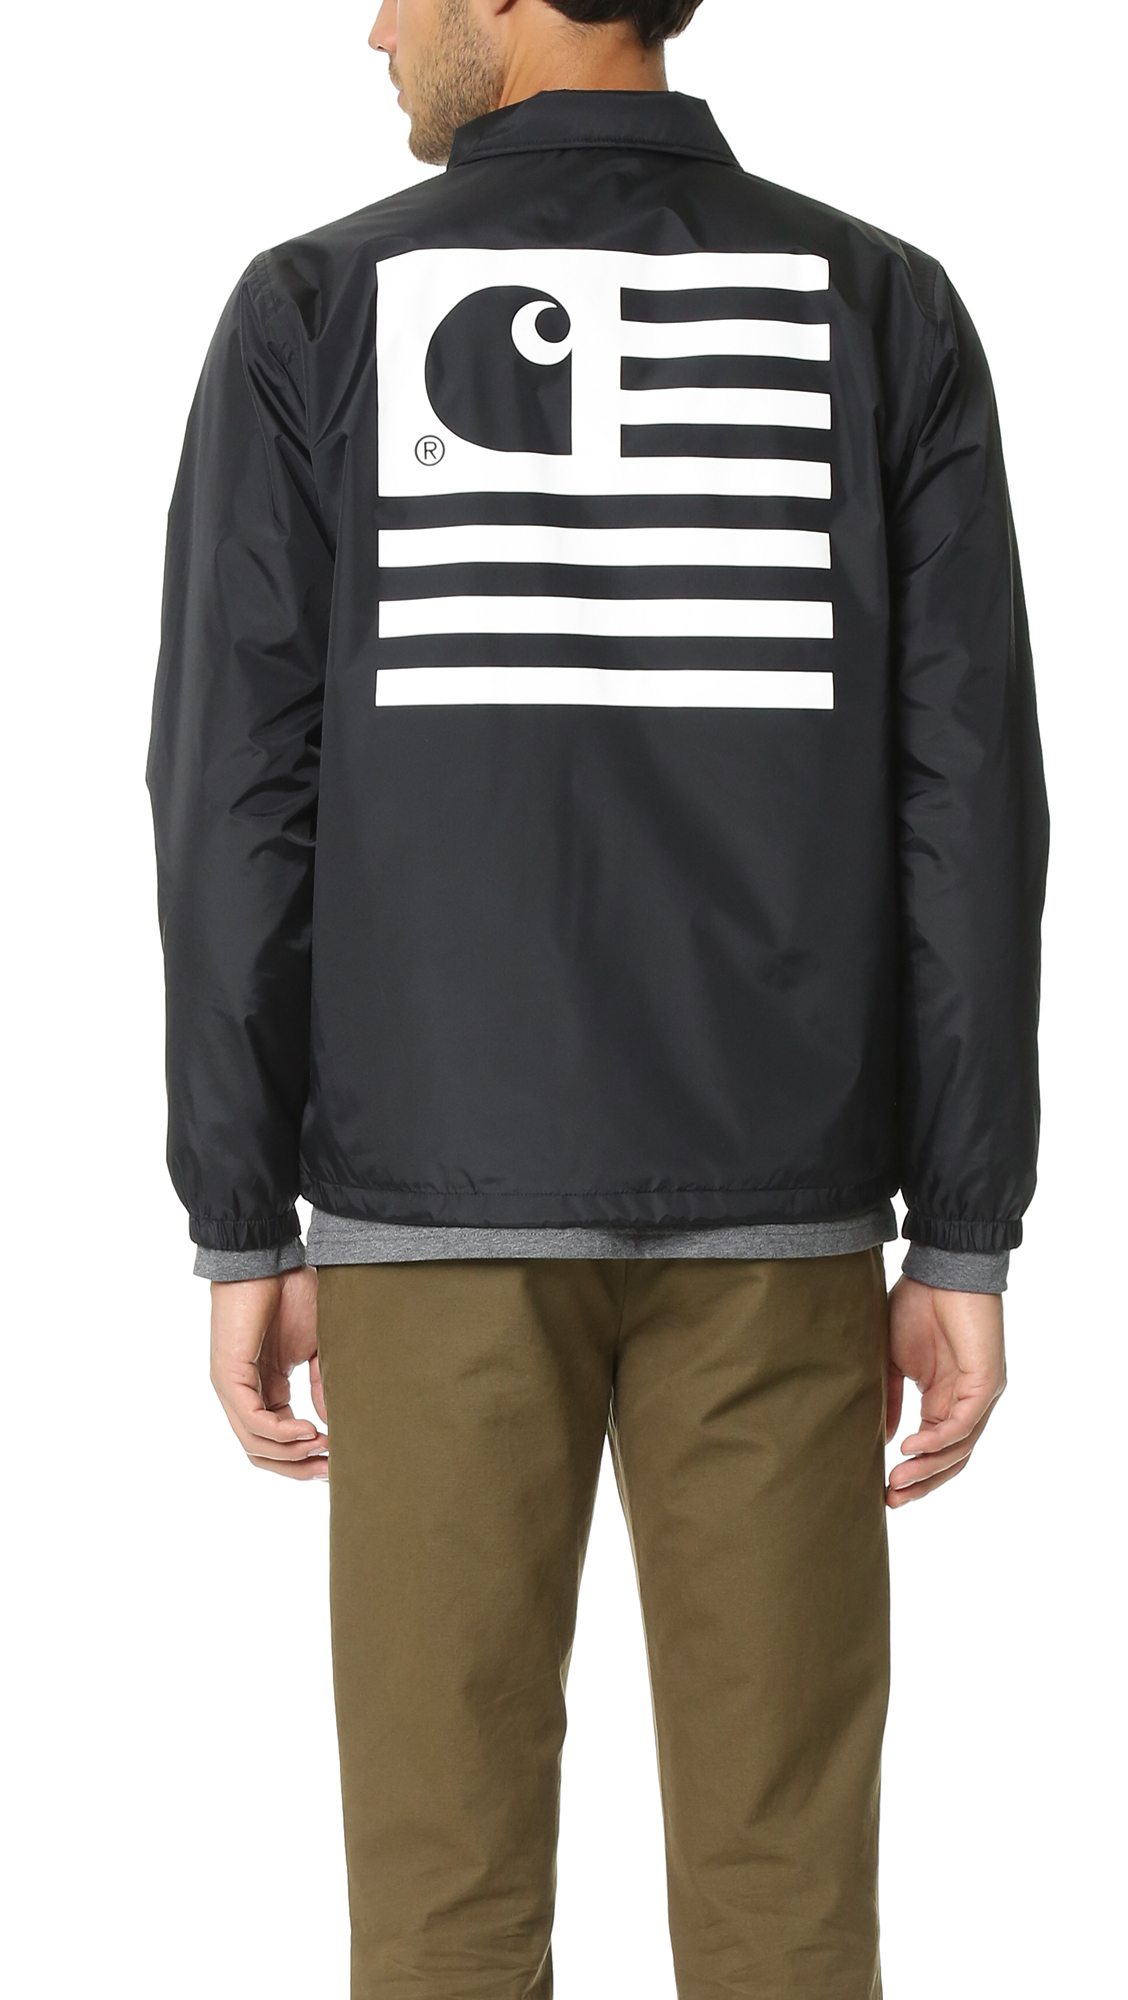 0123e20f Carhartt WIP State Coach Jacket in Black for Men - Lyst